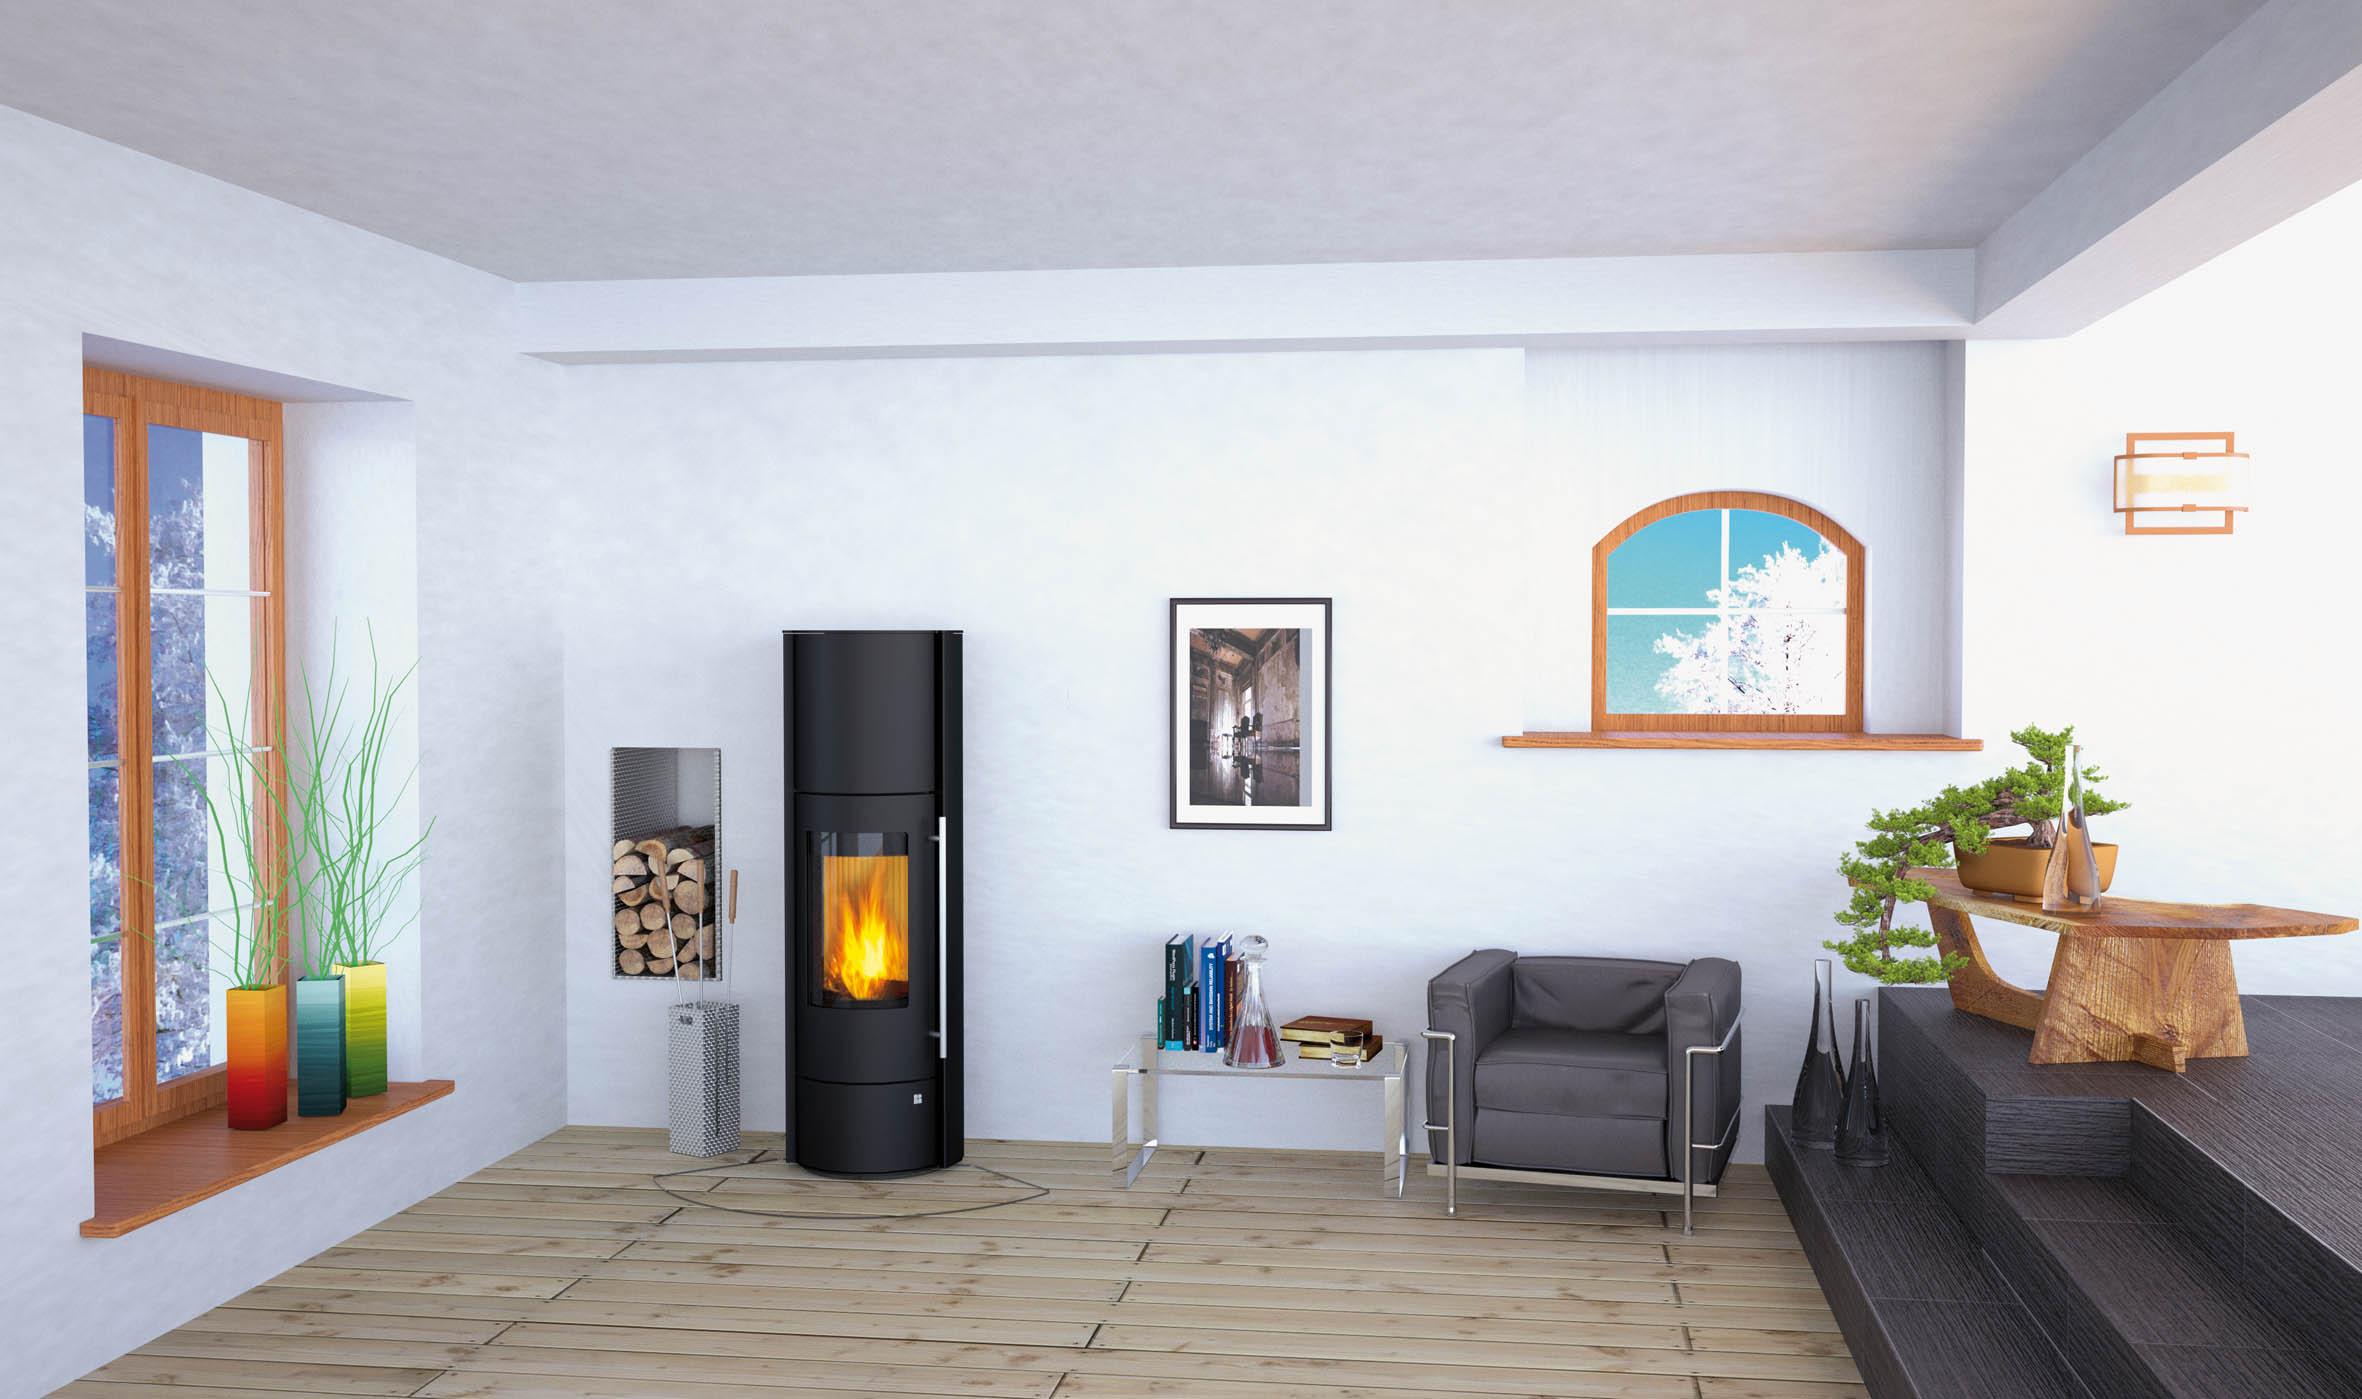 Kaminofen 4 Kw Best Arco With Kaminofen 4 Kw Affordable